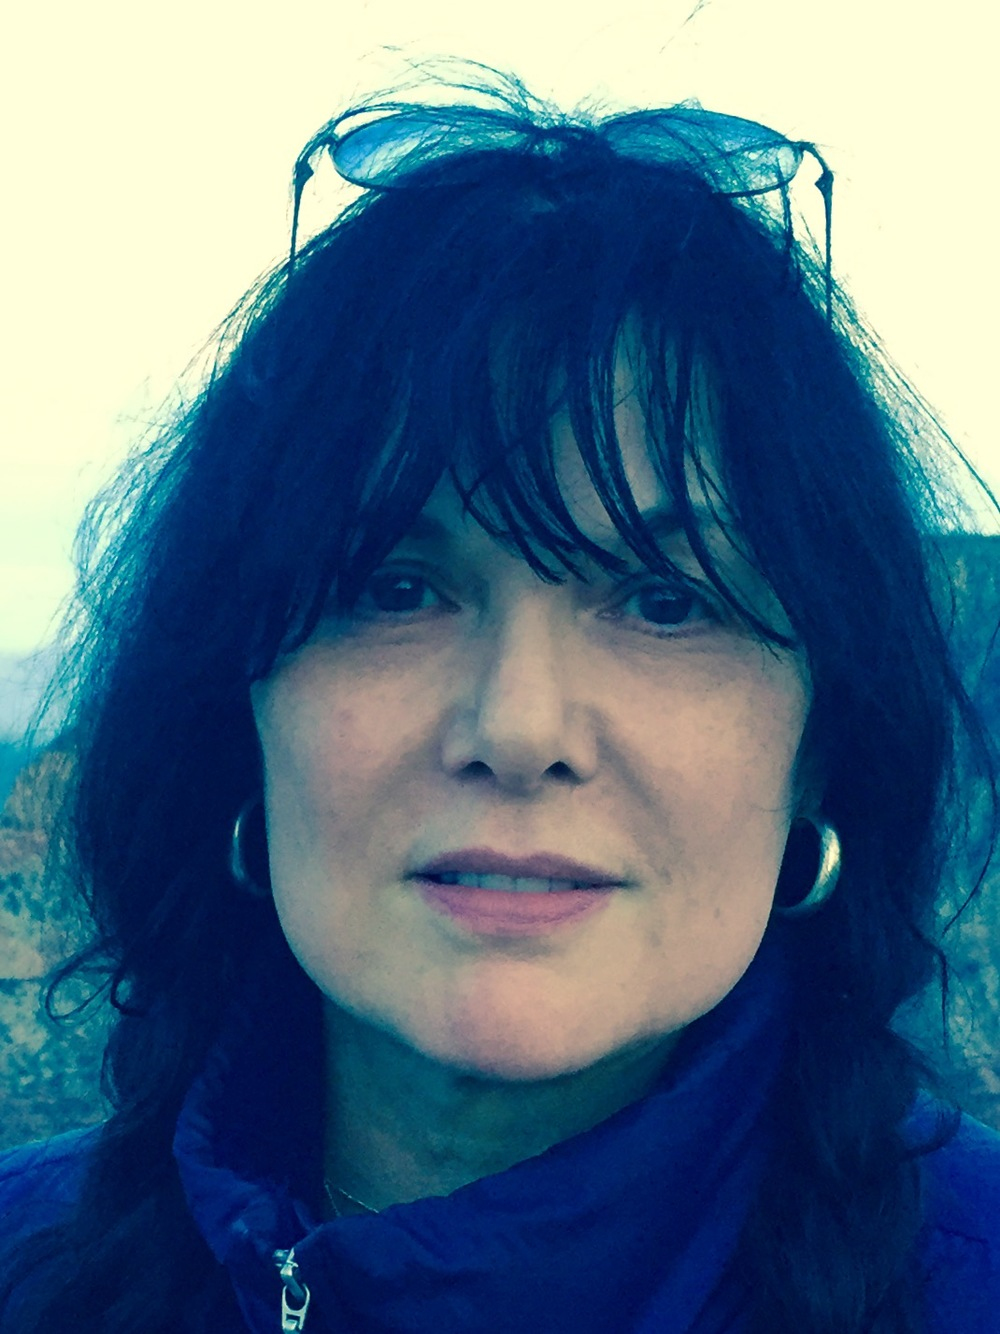 Ann Wilson at the Grand Canyon, Arizona